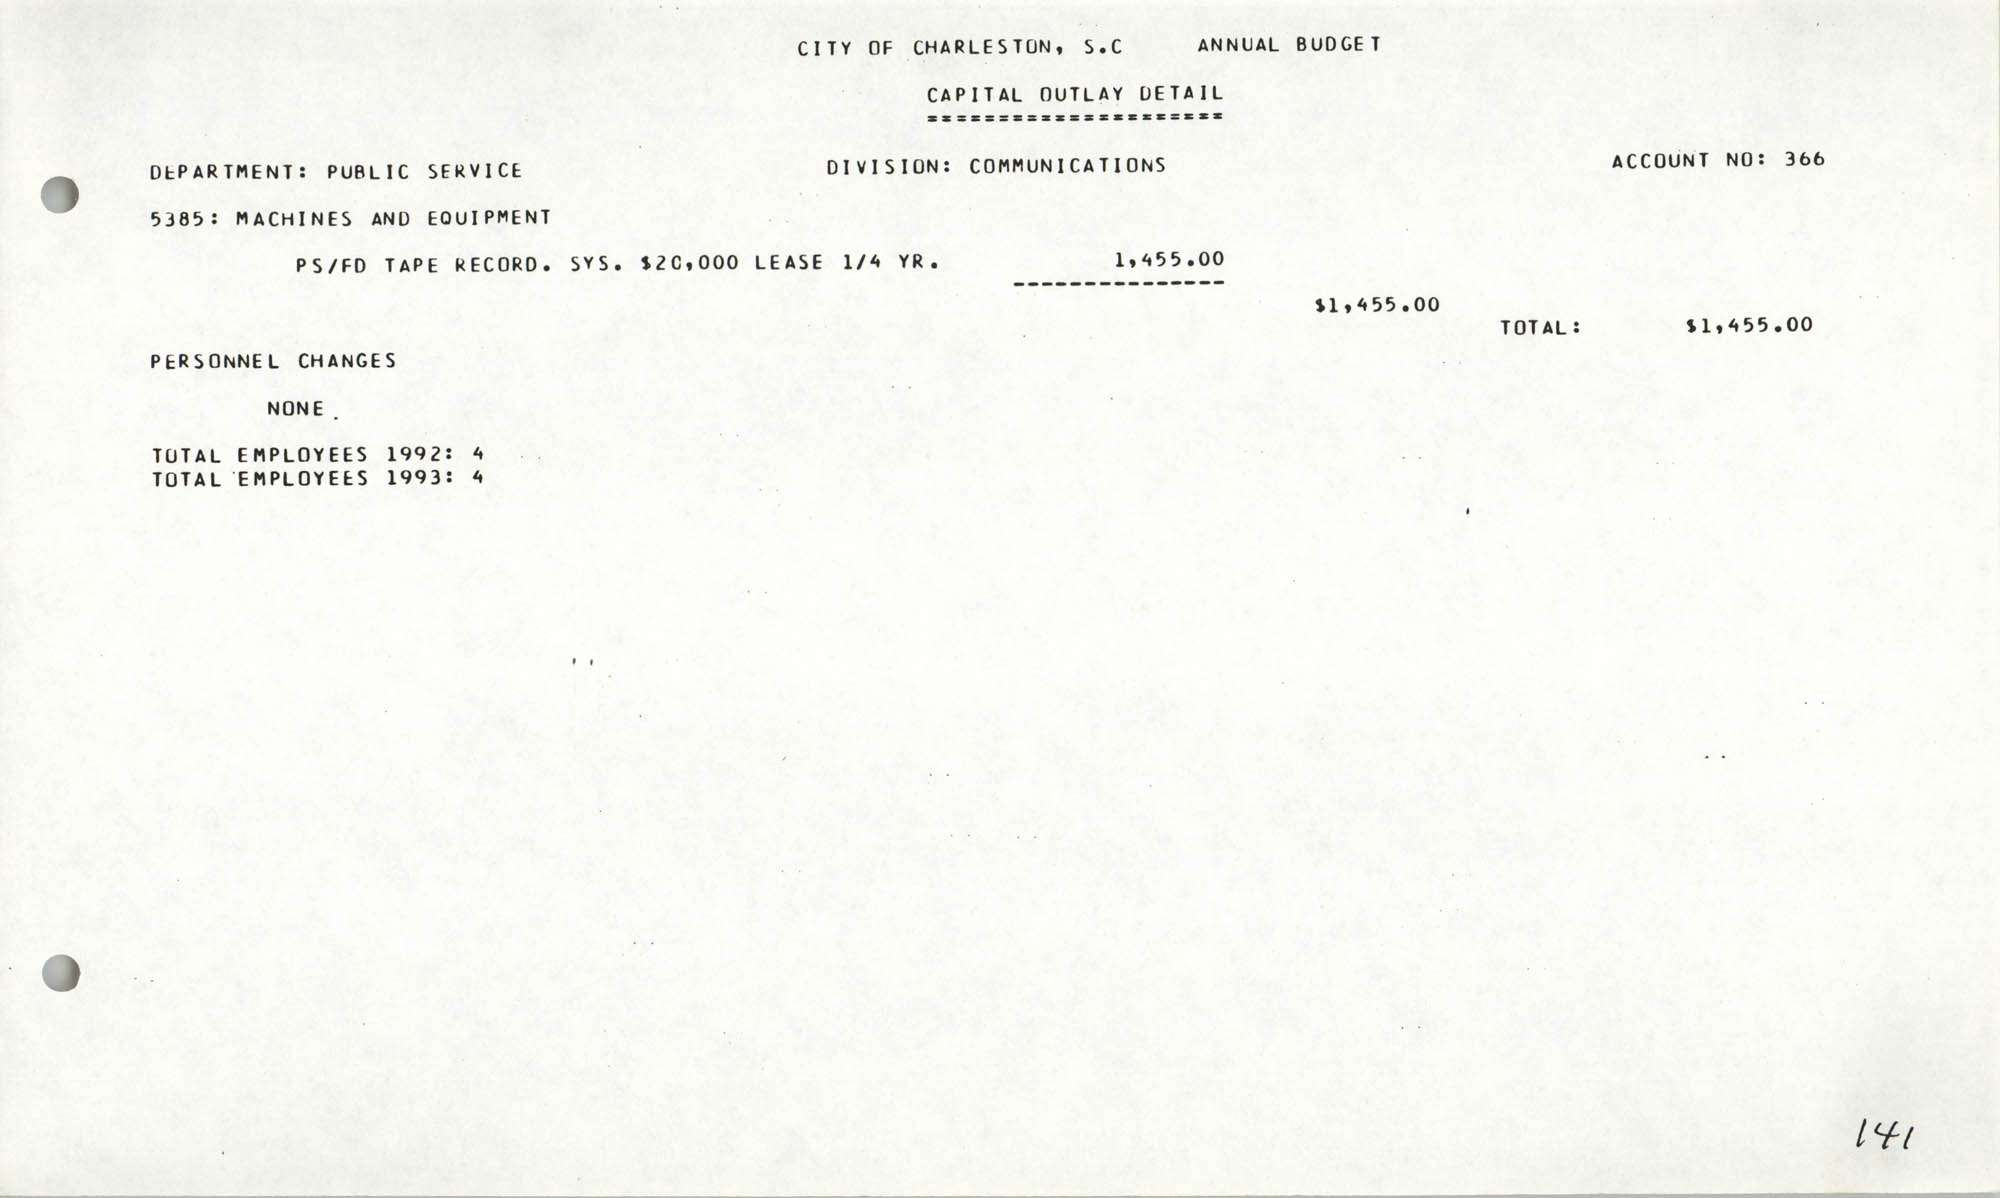 The City Council of Charleston, South Carolina, 1993 Budget, Page 141